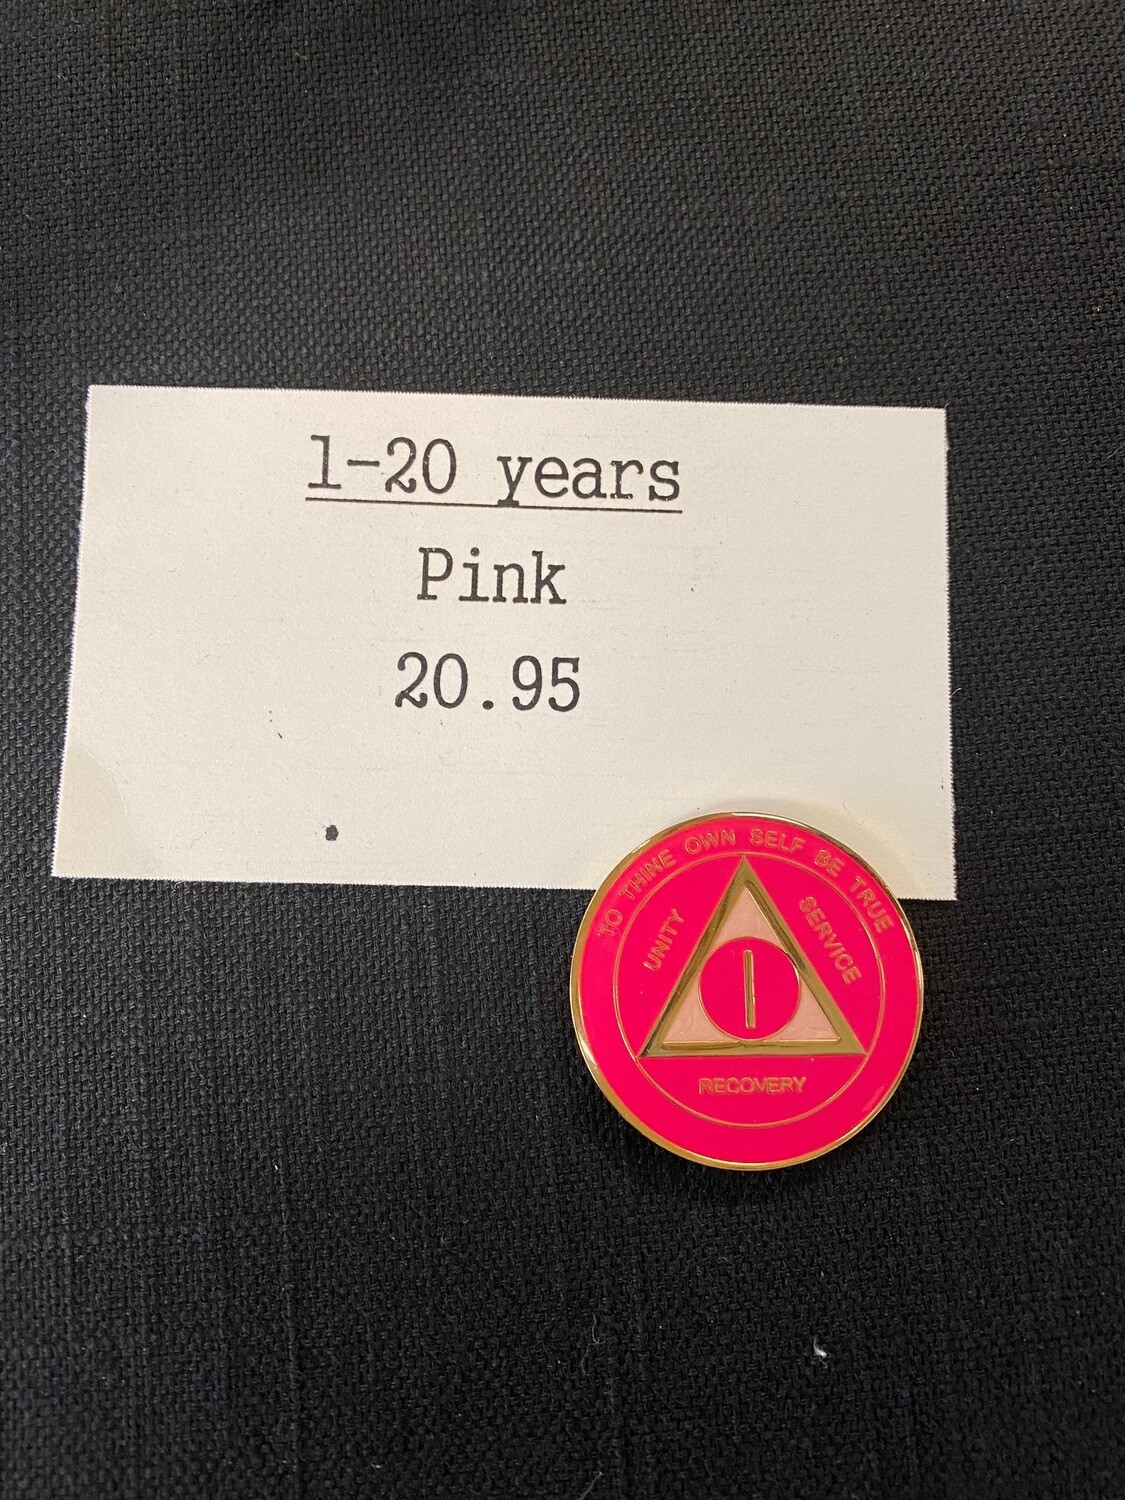 Pink and gold medallion years 1-20